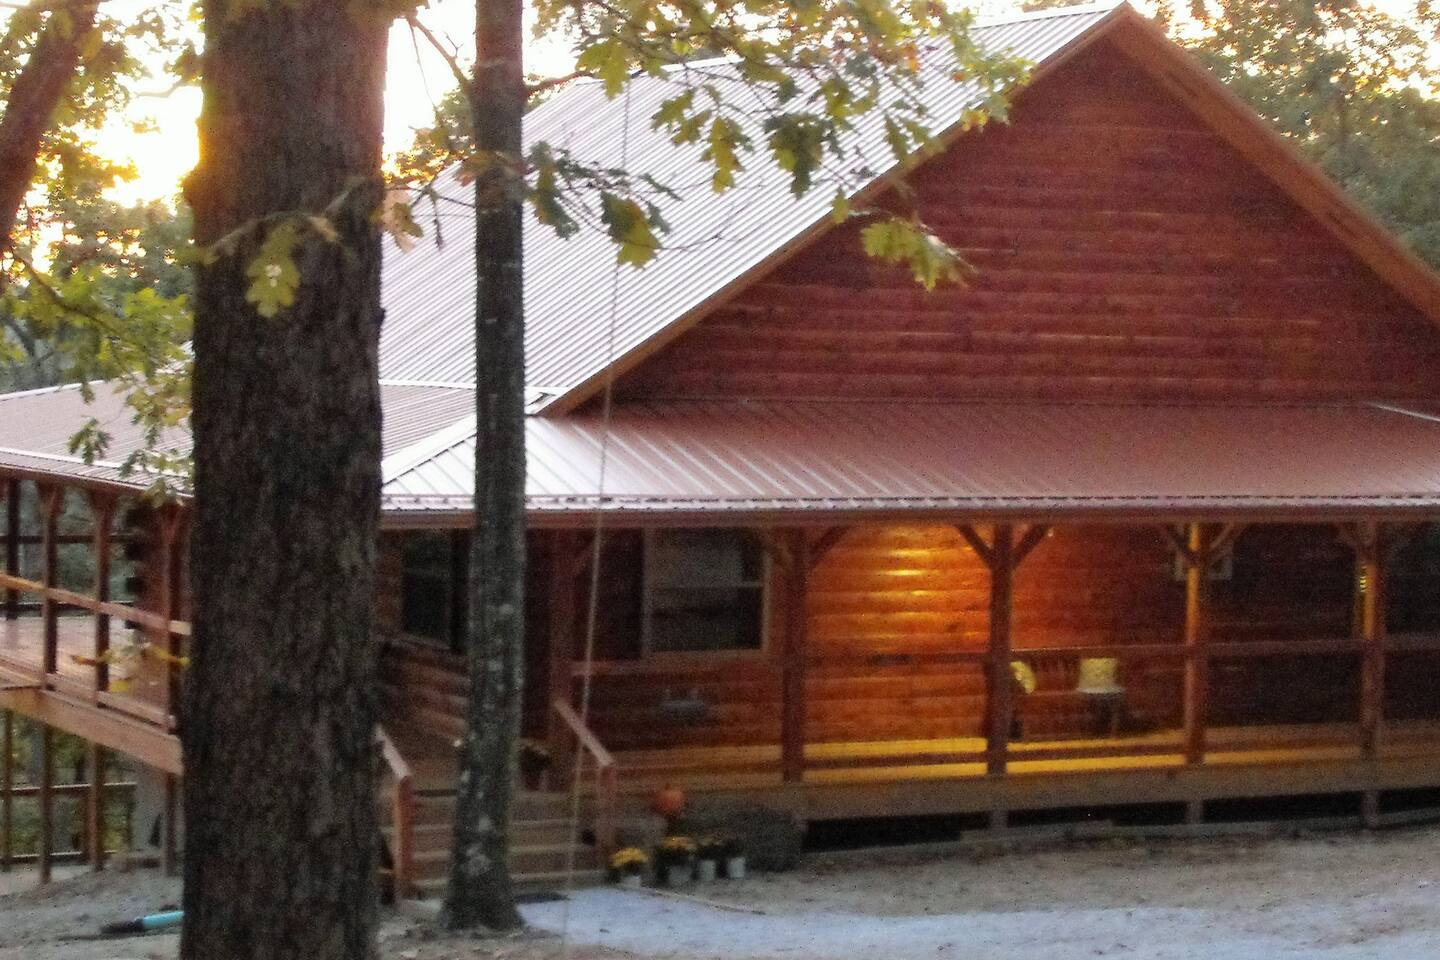 places sub int ar arkansas camping to cabins parks lodging stay in state